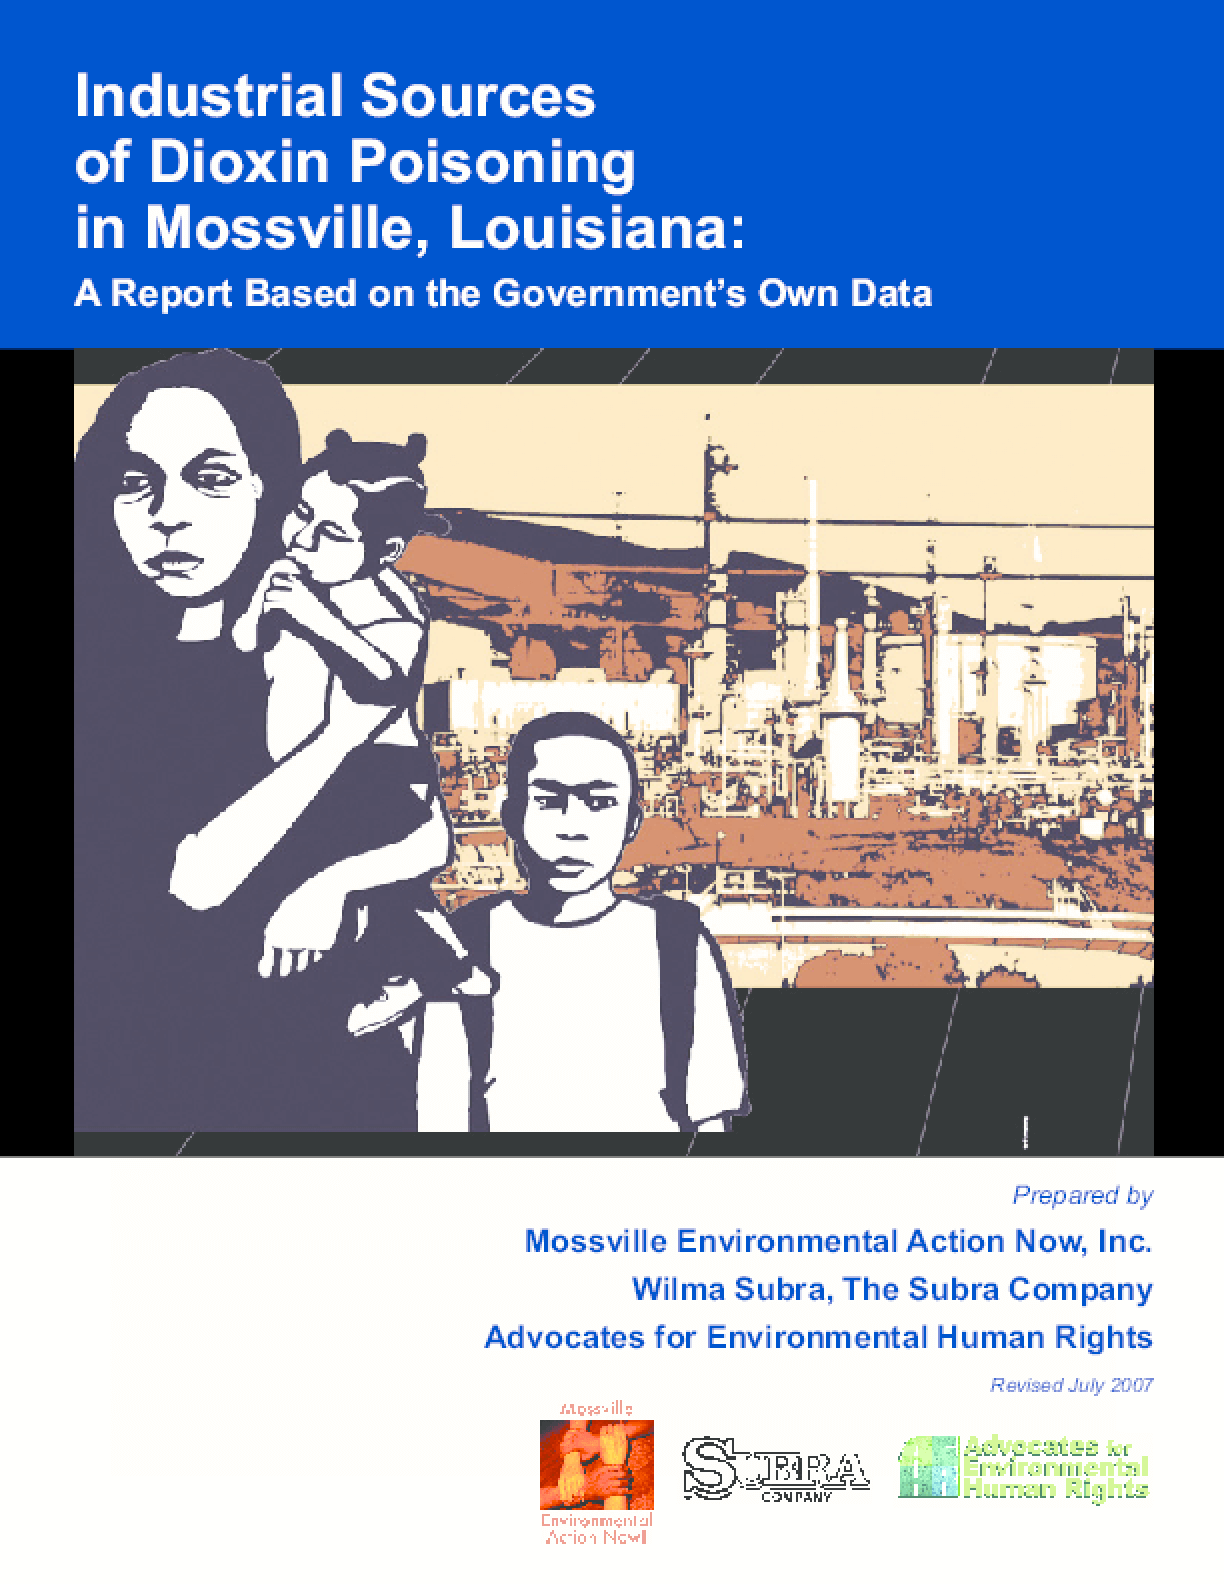 Industrial Sources of Dioxin Poisoning in Mossville, Louisiana: A Report Based on the Government's Own Data